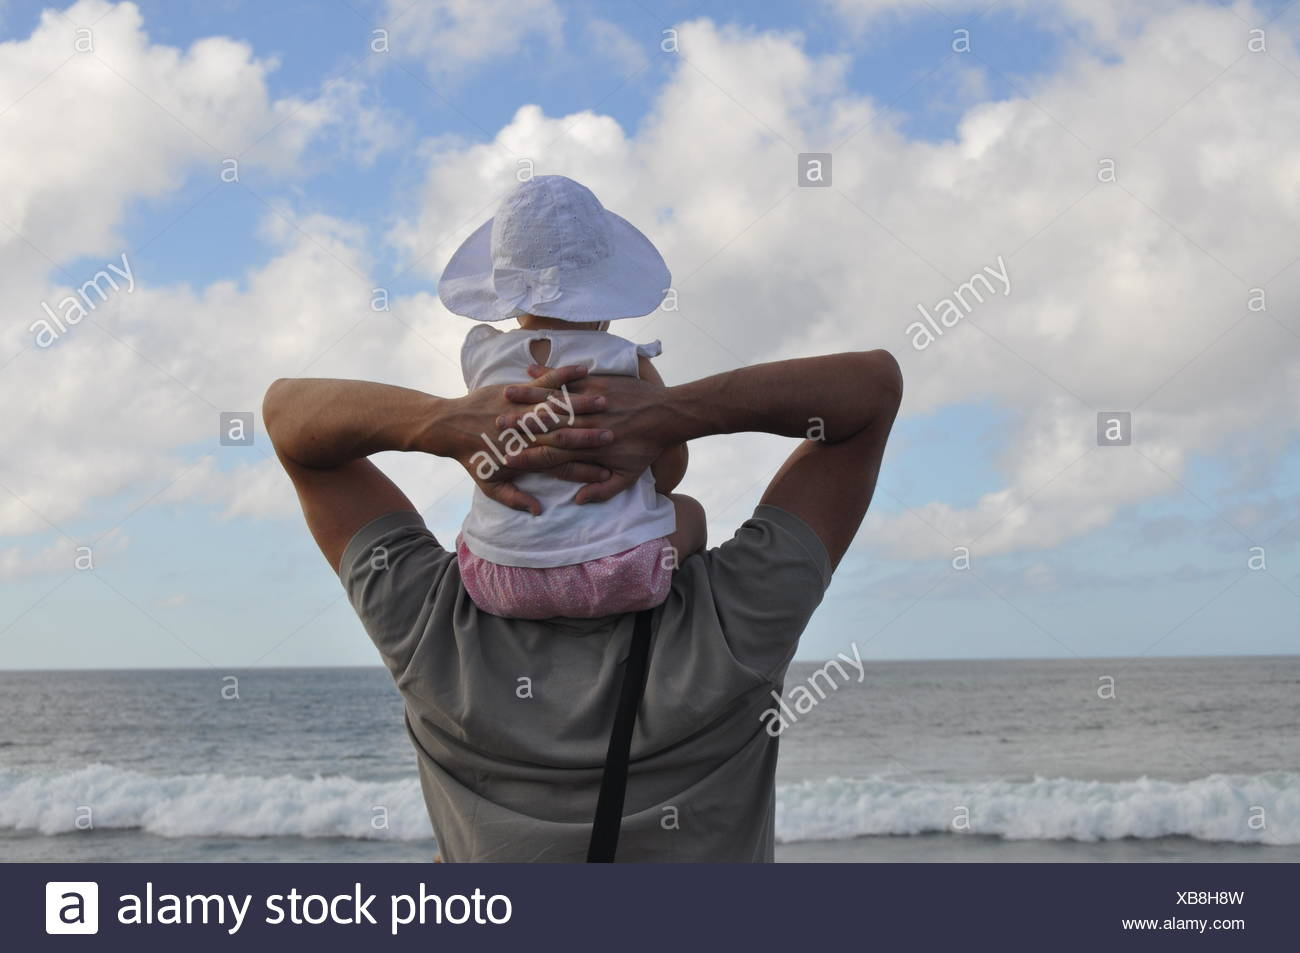 Rear View Of Father Piggybacking Baby Girl At Beach Against Sky - Stock Image